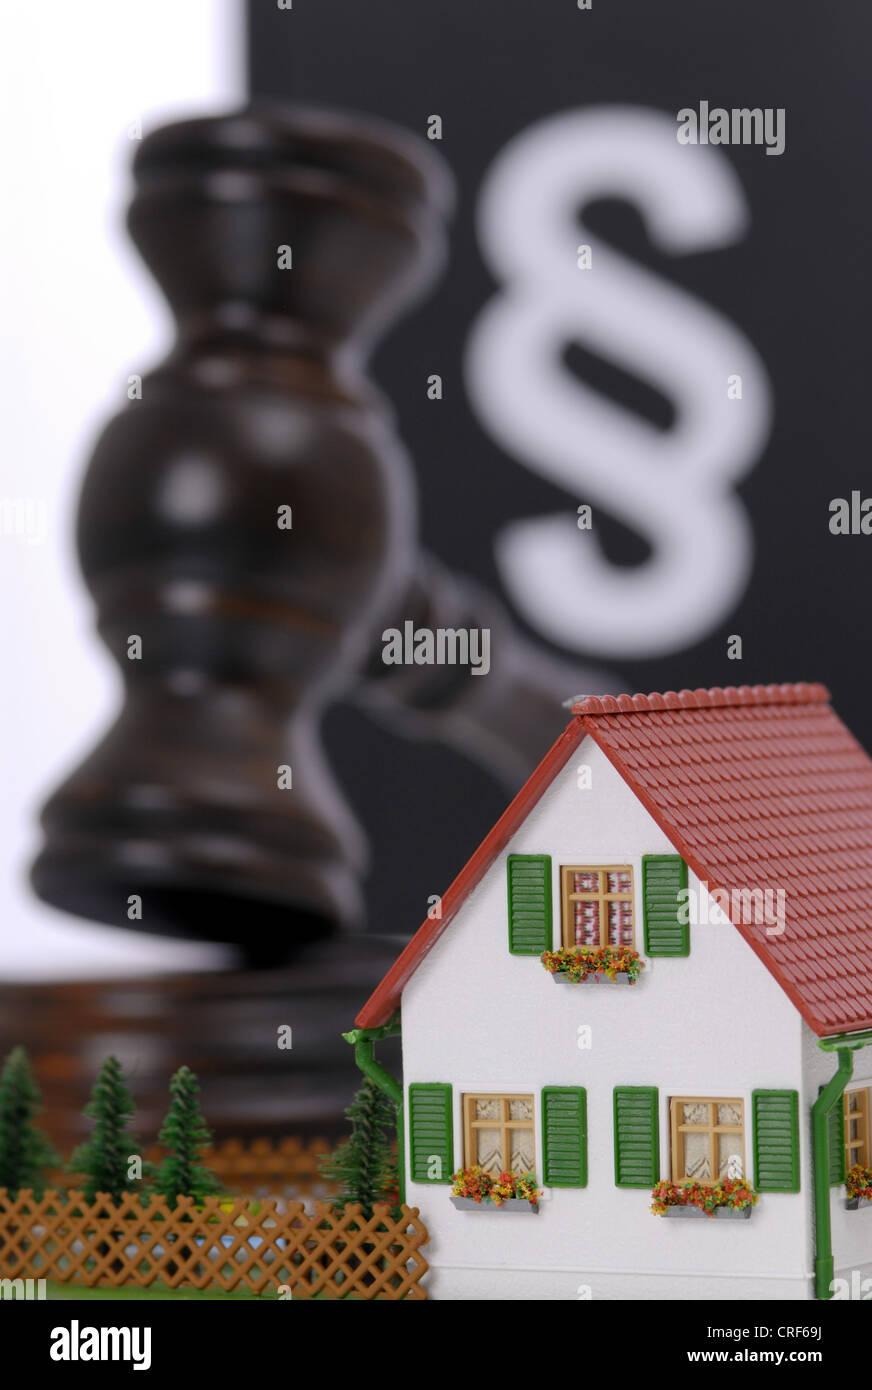 symbolic picture for compulsory auction - Stock Image